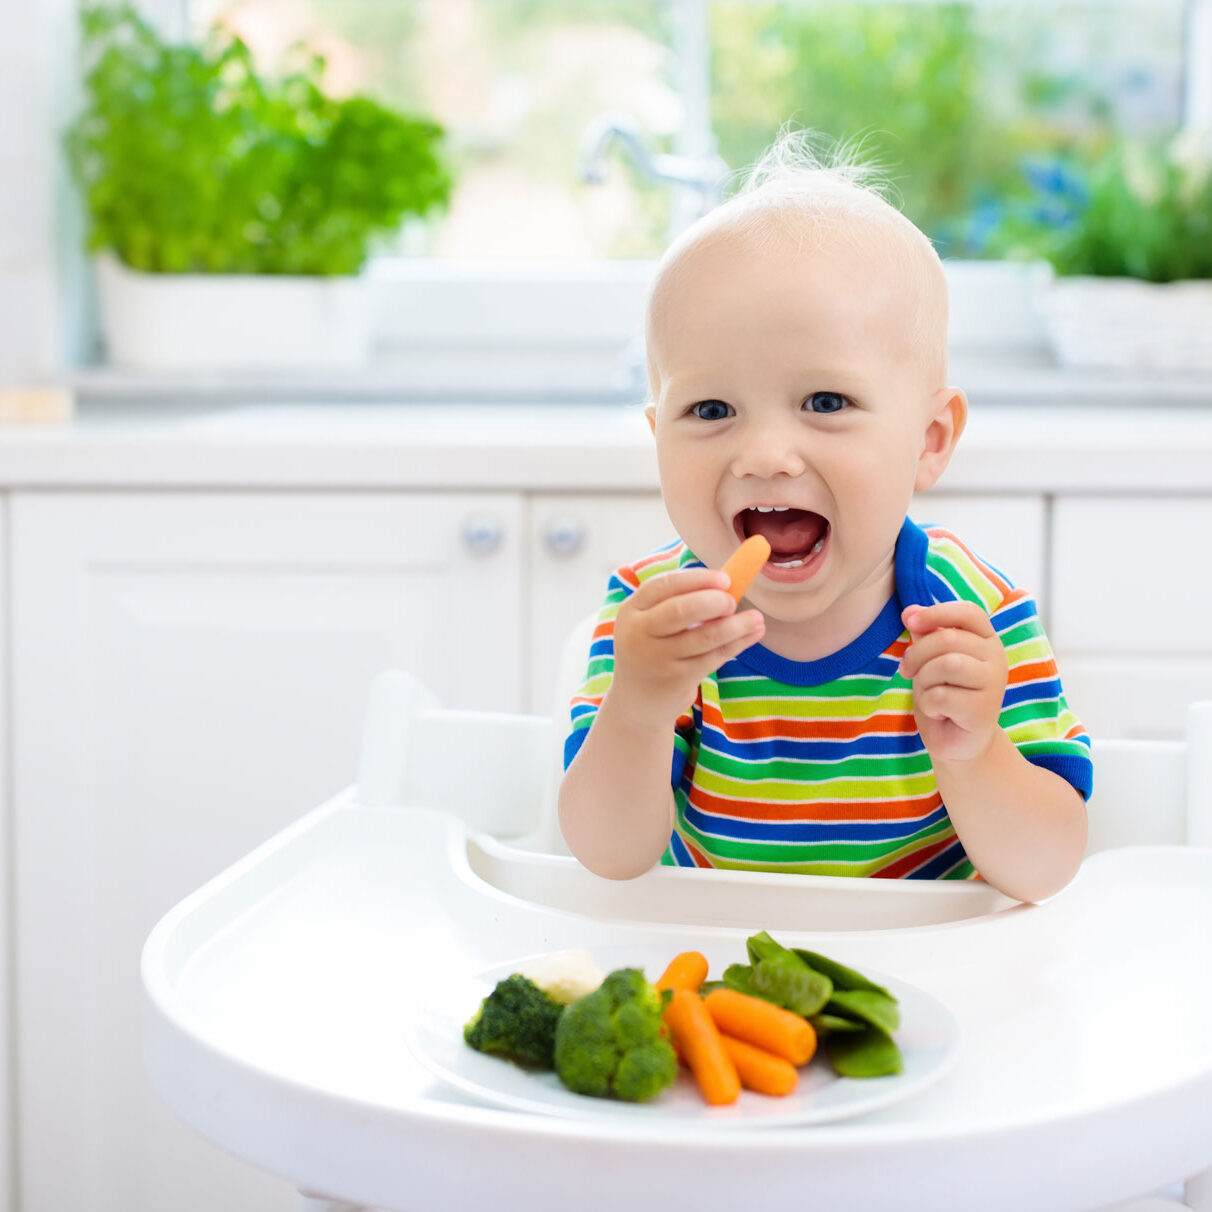 Baby-led-weaning-vegetables